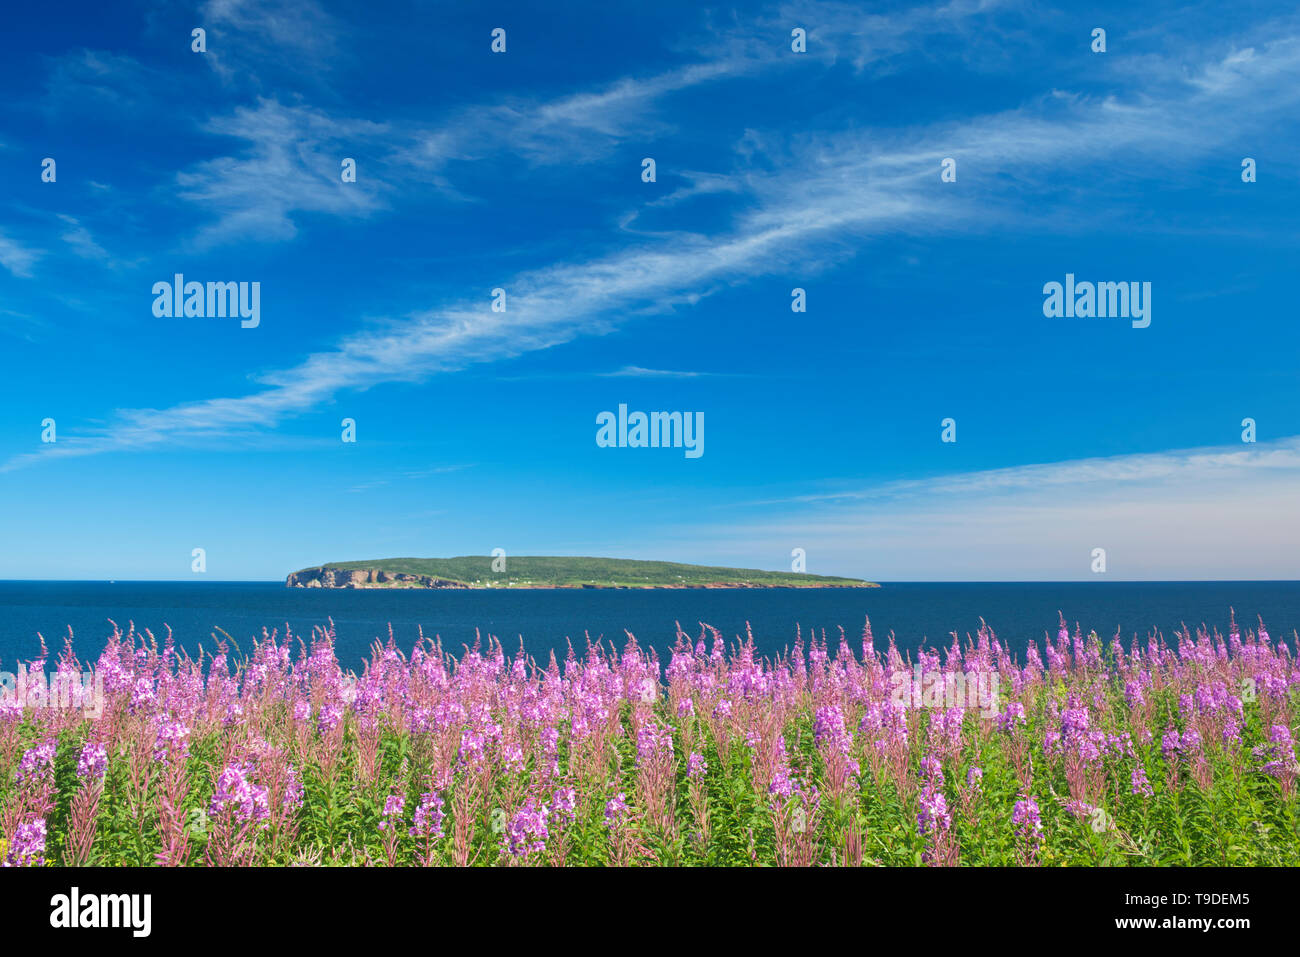 Fireweed wildflowers and Bonaventure Island in the Atlantic Ocean at the end of the Gaspe Peninsula. Parc national de l'Île-Bonaventure-et-du-Rocher-Percé. This is a provincial parc, not a true federal park, Percé, Quebec, Canada - Stock Image